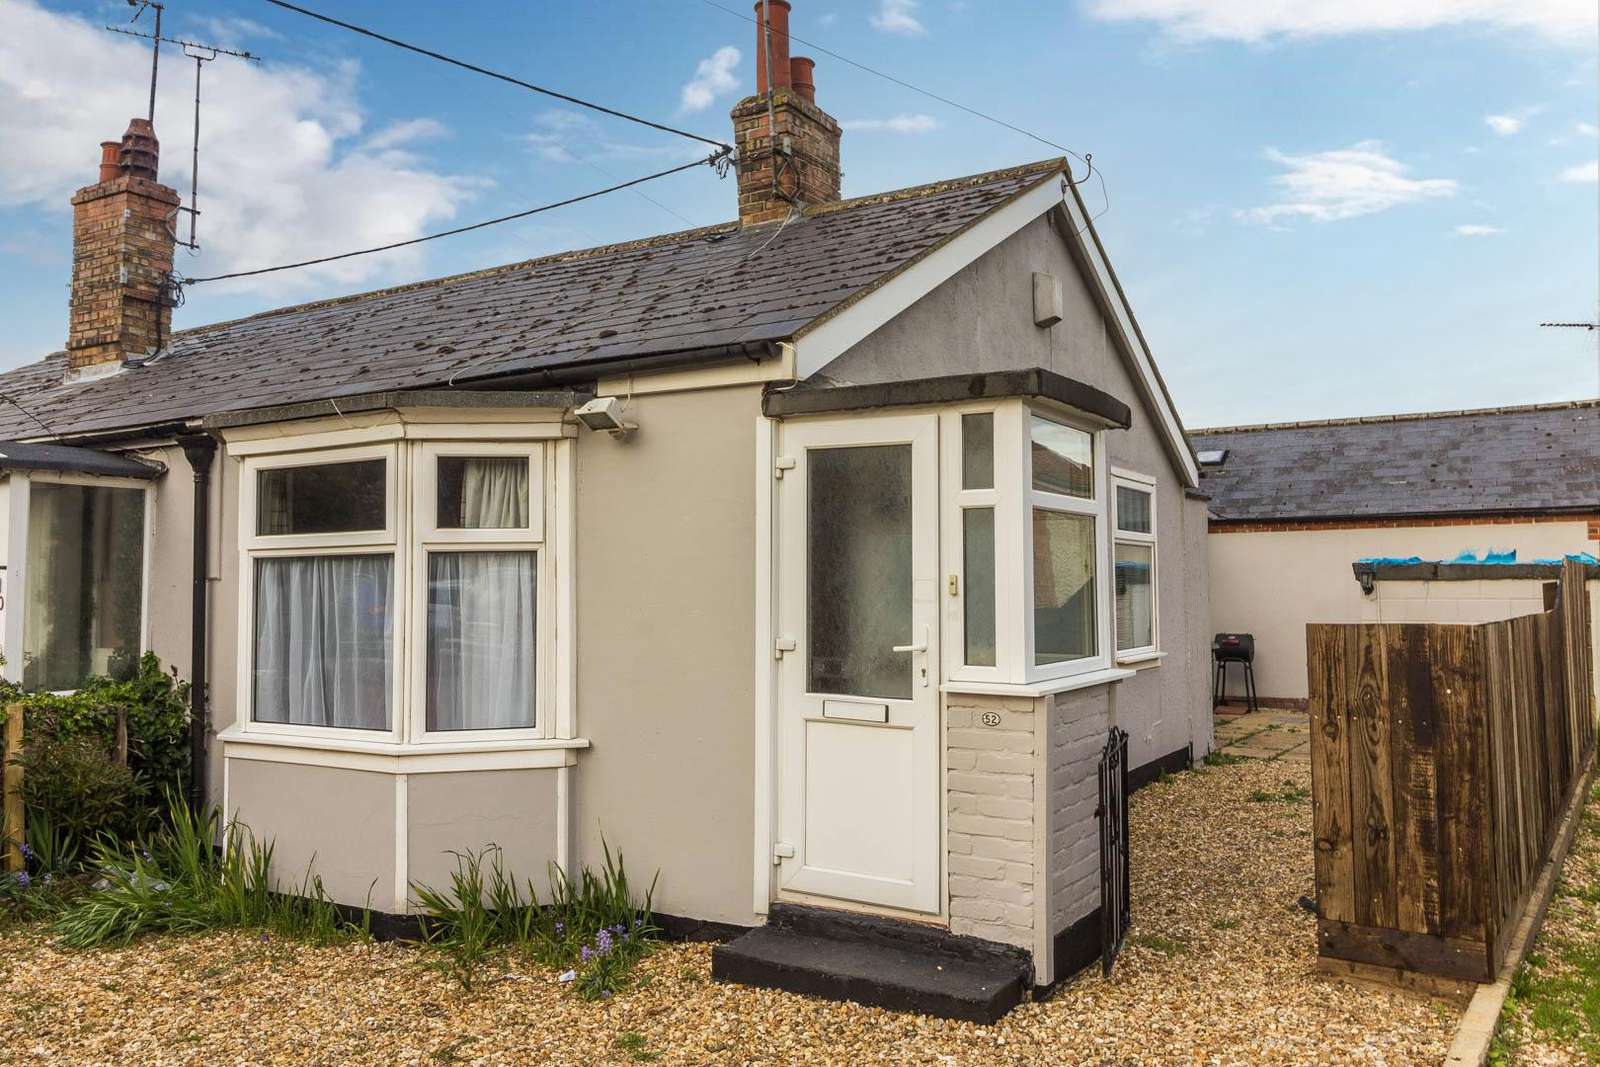 99052PA – Poplar Avenue, 1 bed, 2 berth holiday cottage in Heacham. D/G C/H. Diamond rated. - property